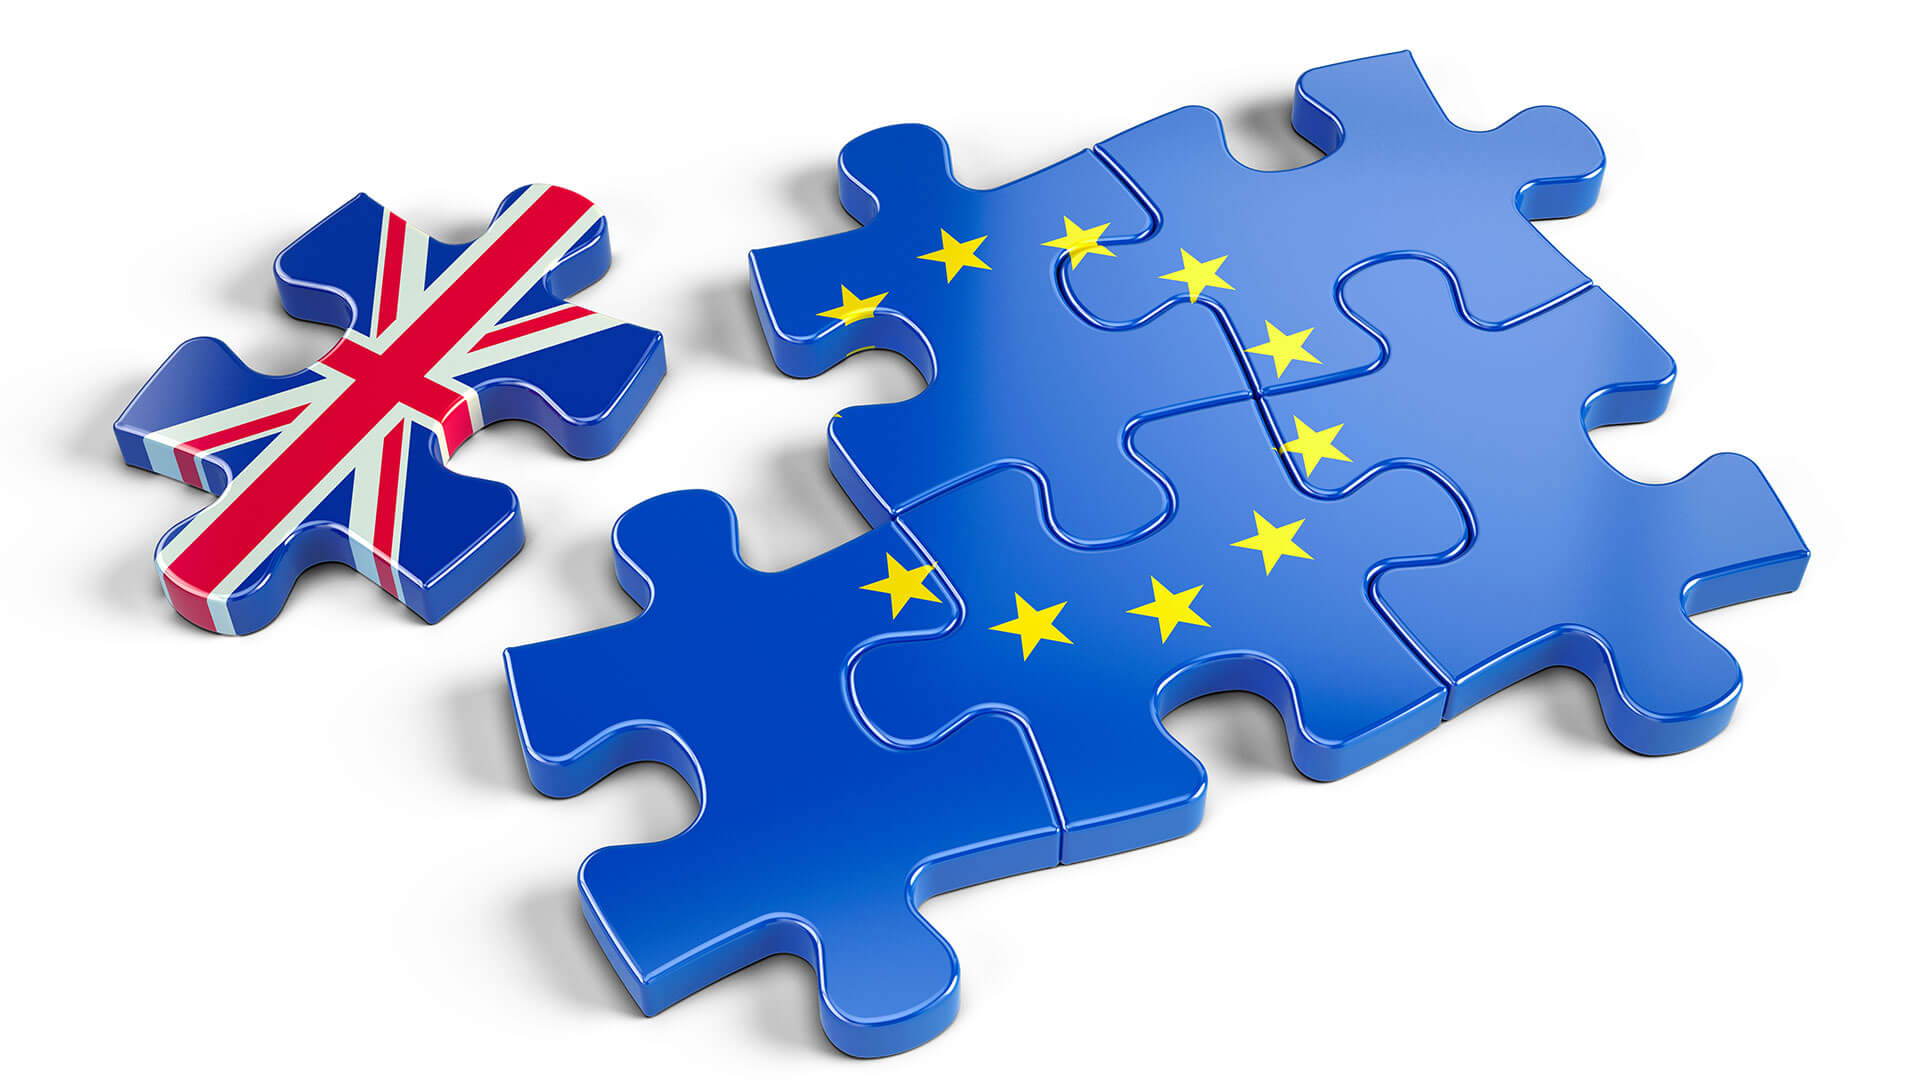 British flag in EU Jigsaw